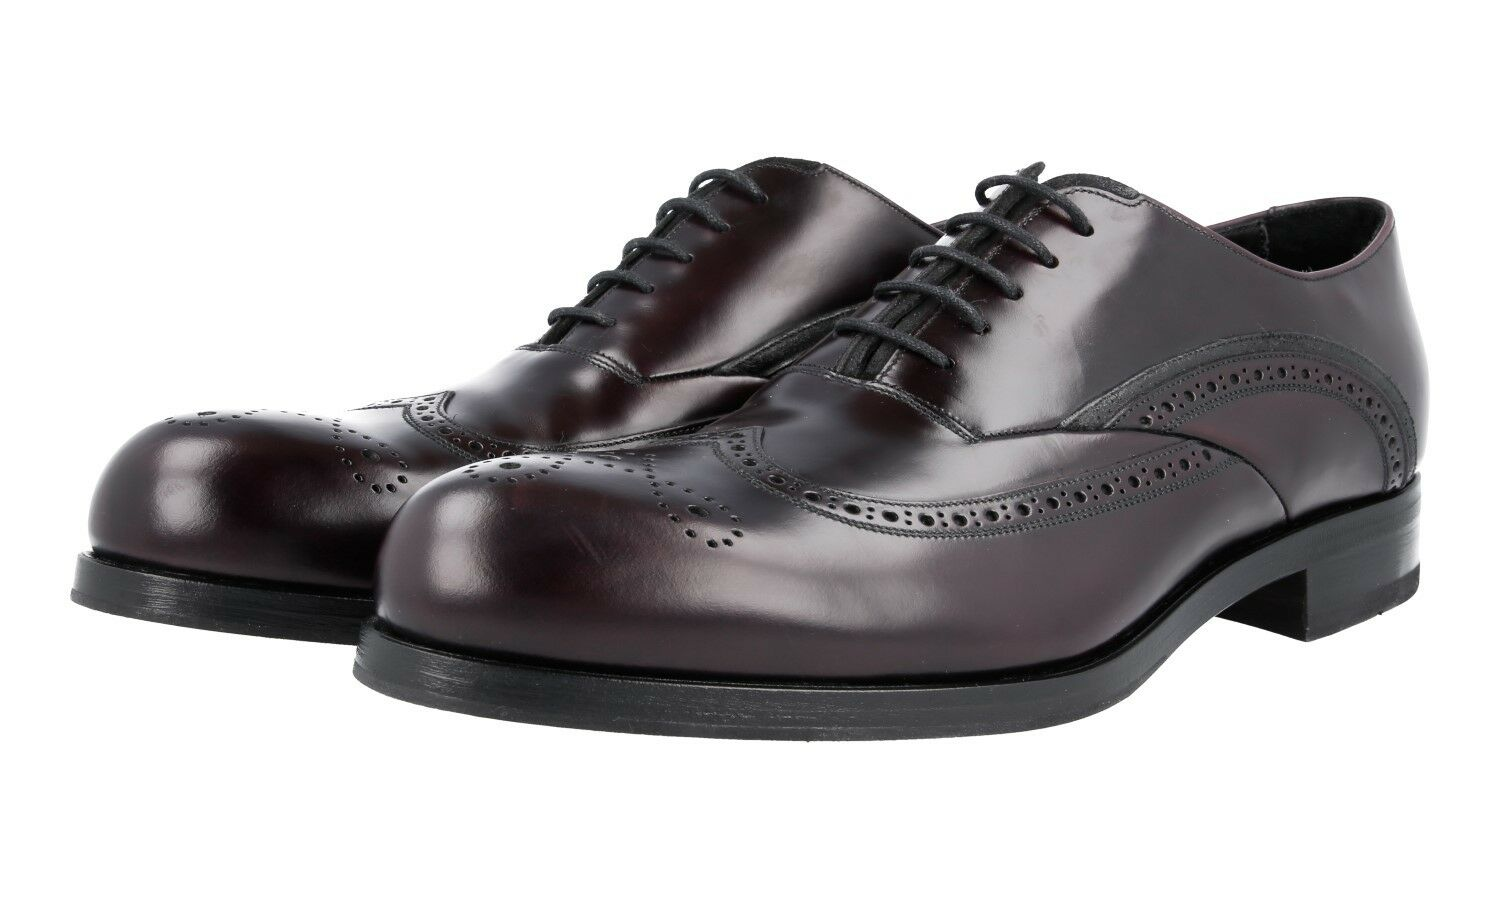 L SO PRADA WINGTIP BROGUE OXFORD scarpe 2ee201 CORDOVAN NUOVE NEW 10,5 44,5 45